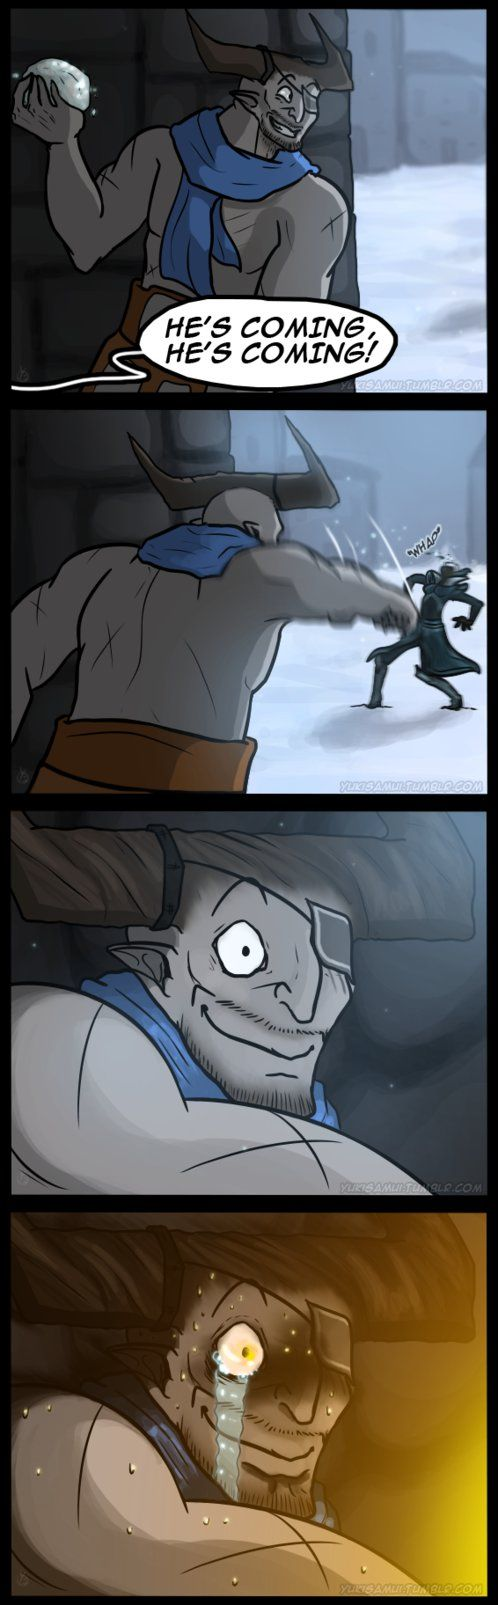 Dragon Age Comic - Snowbull by YukiSamui.deviantart.com on @DeviantArt